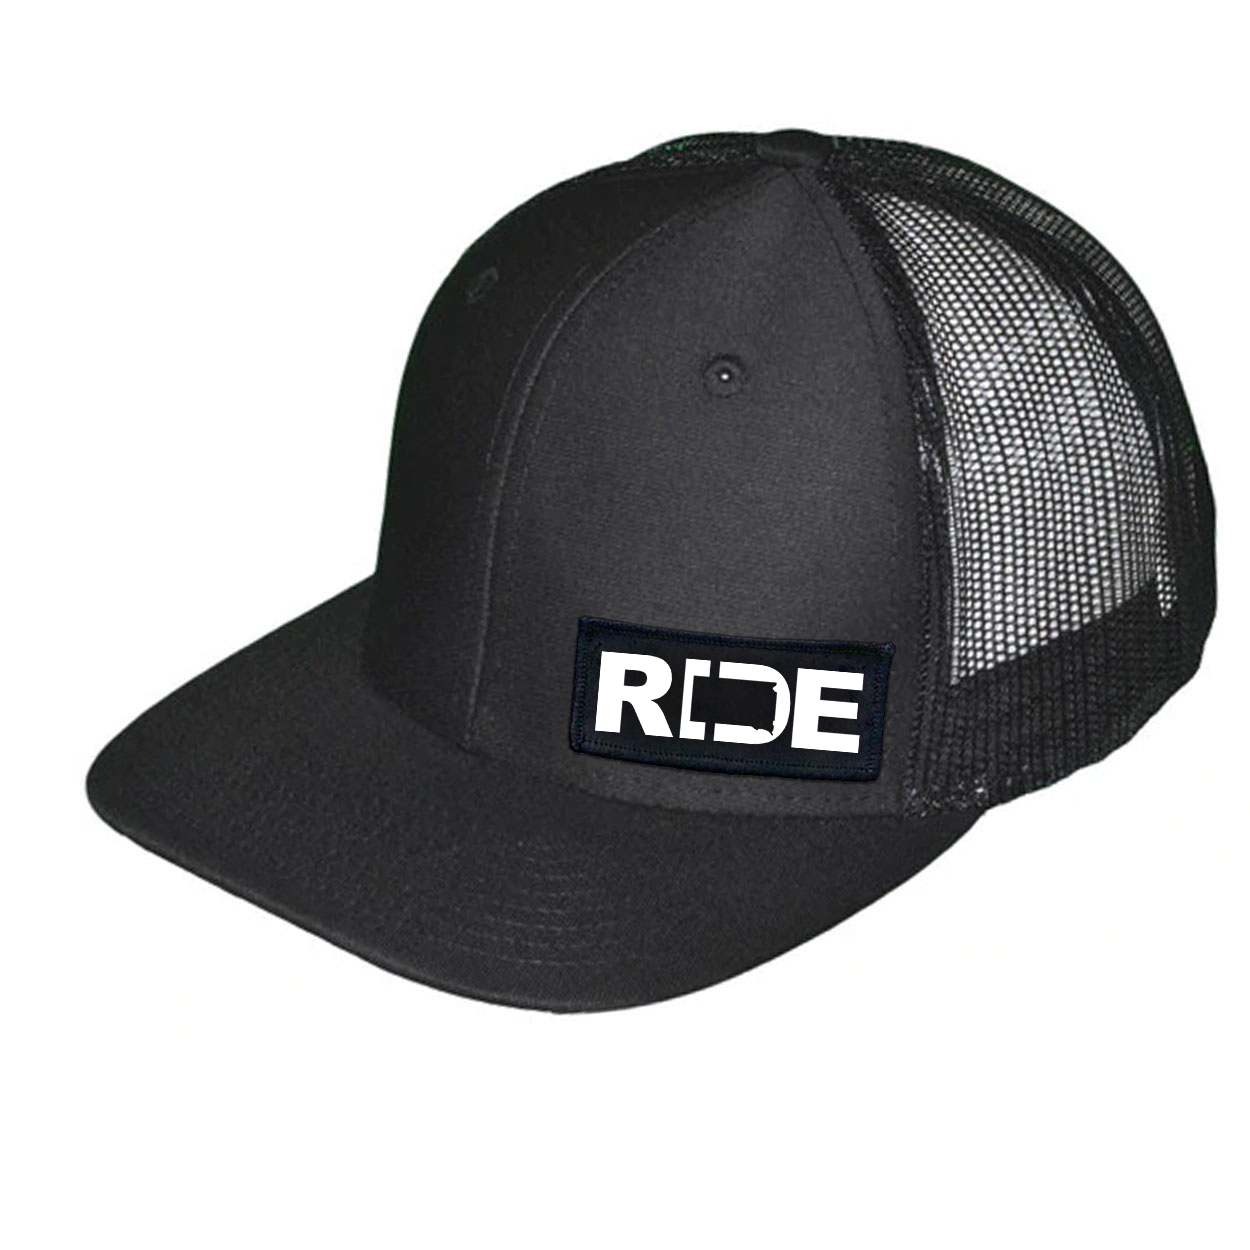 Ride South Dakota Night Out Woven Patch Snapback Trucker Hat Black (White Logo)